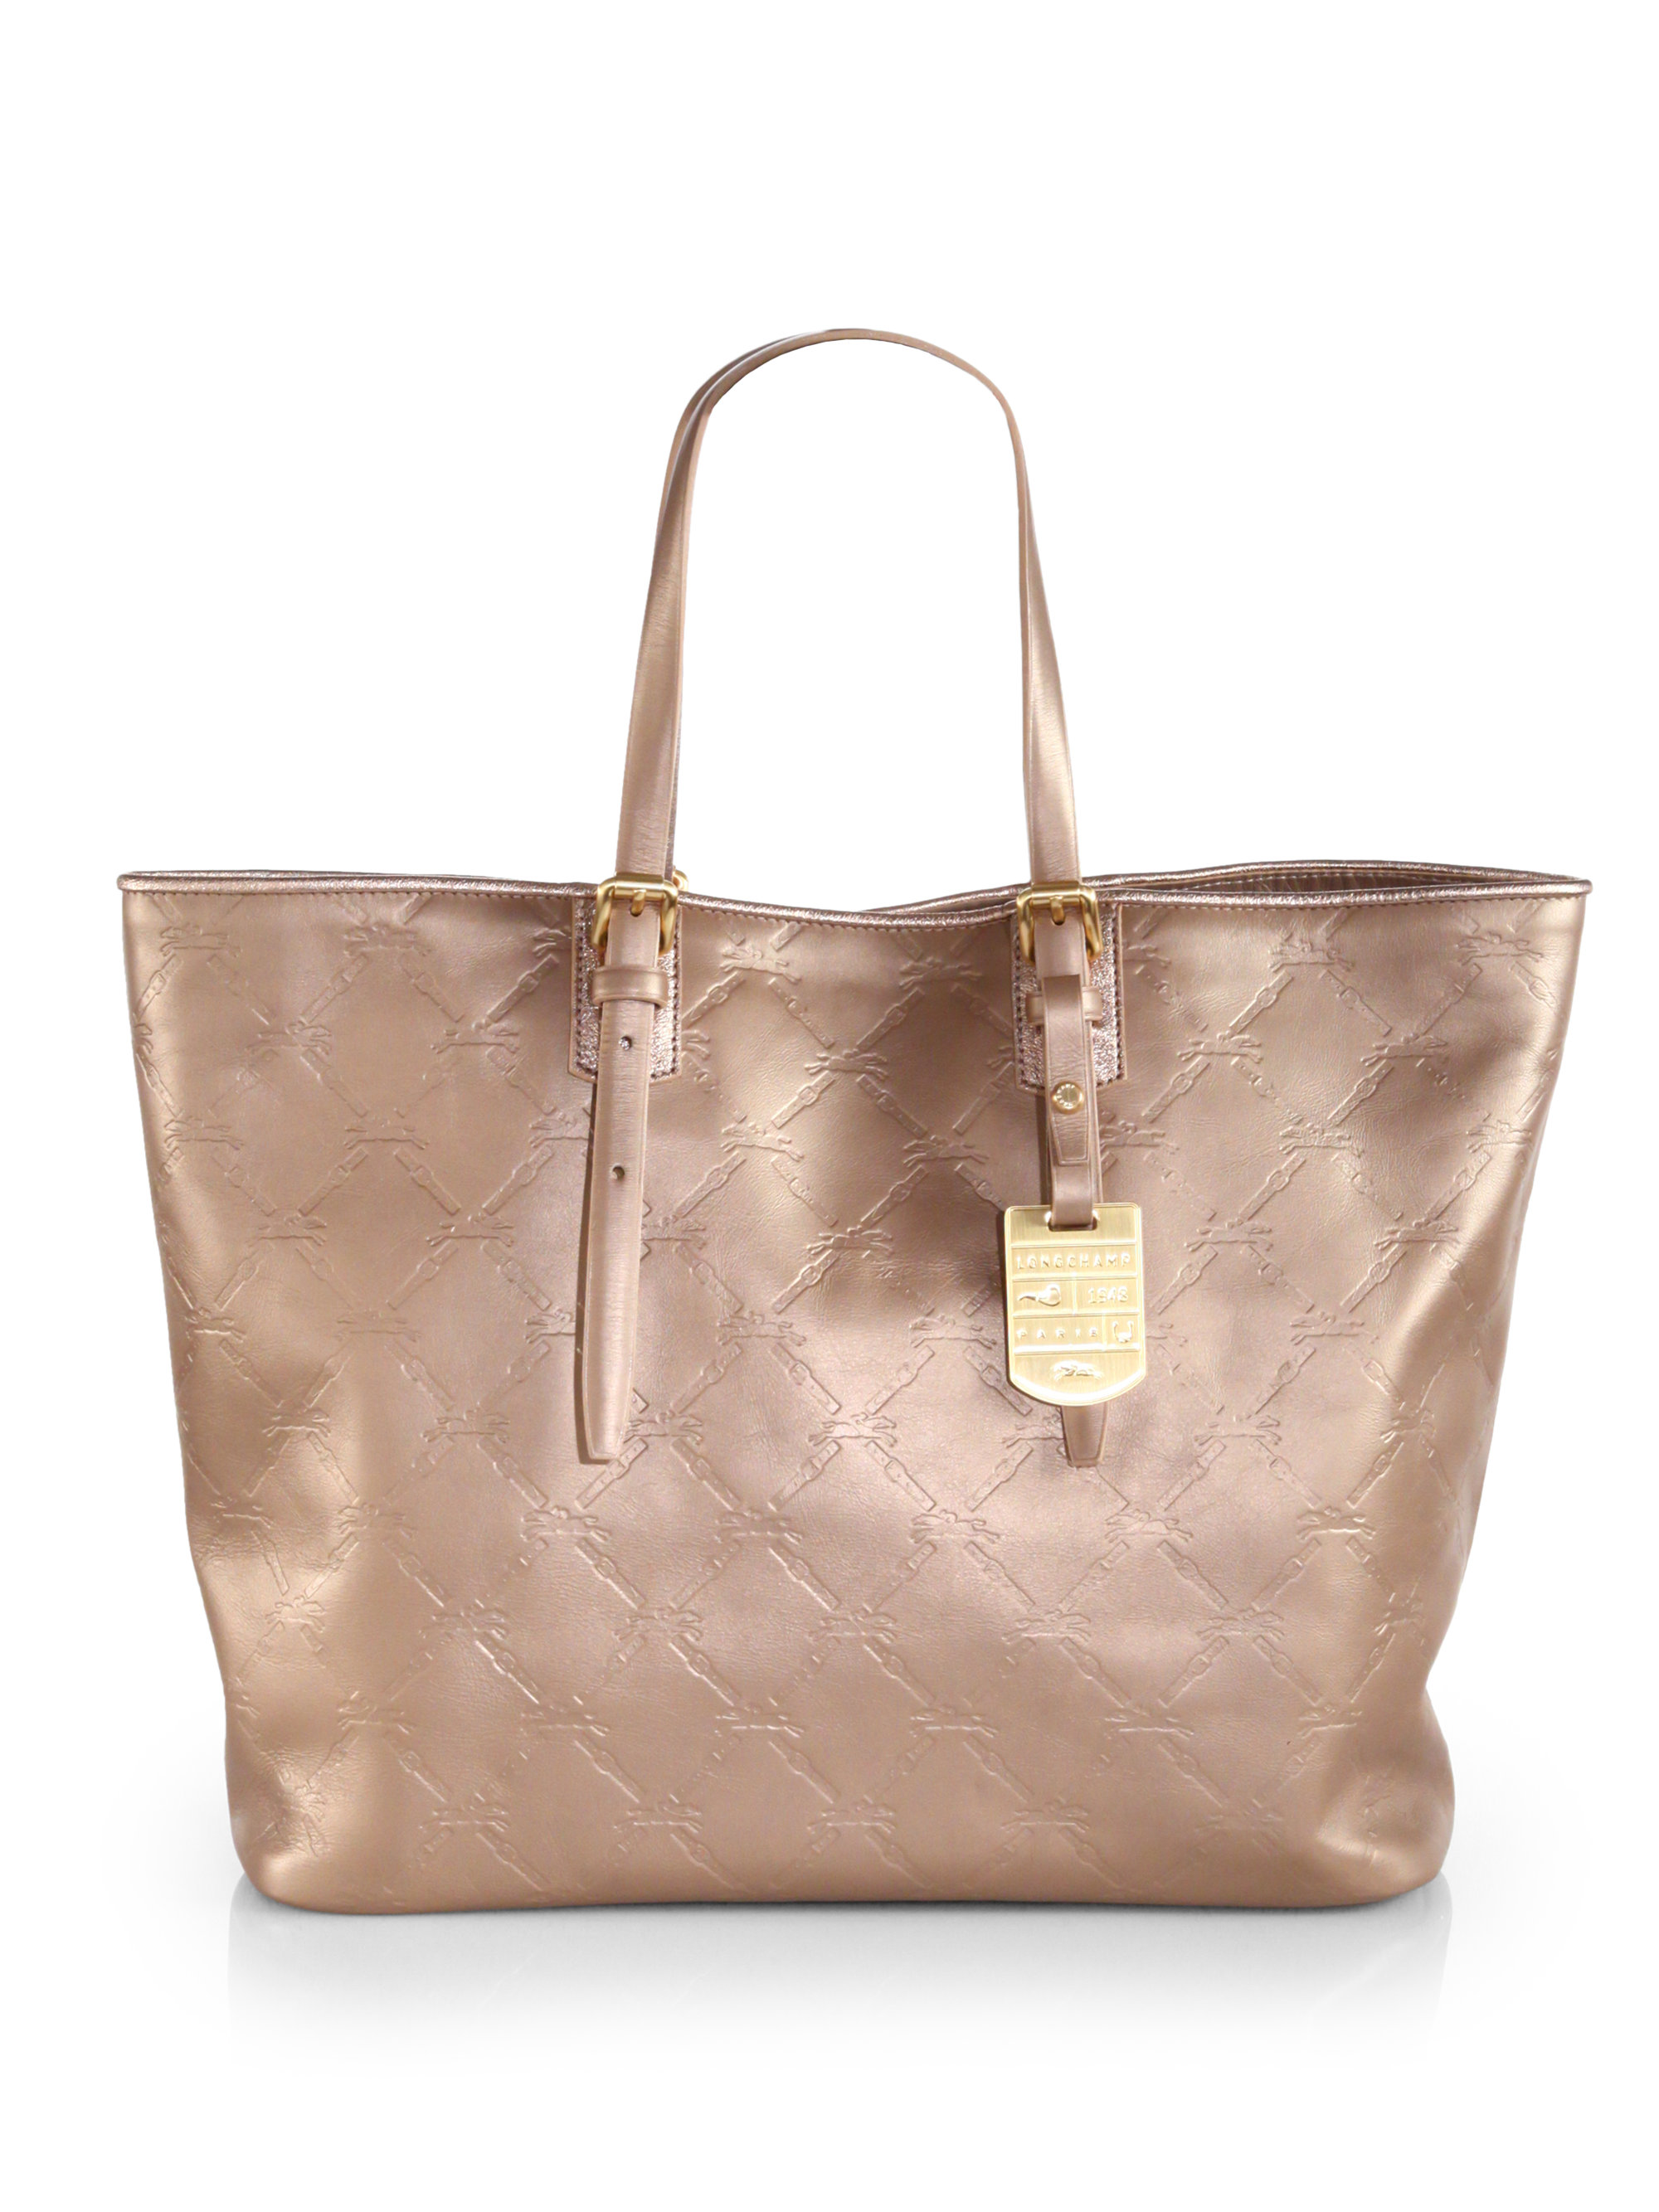 Lyst - Longchamp Lm Cuir Stamped Leather Medium Tote in Metallic ce066a8bc4